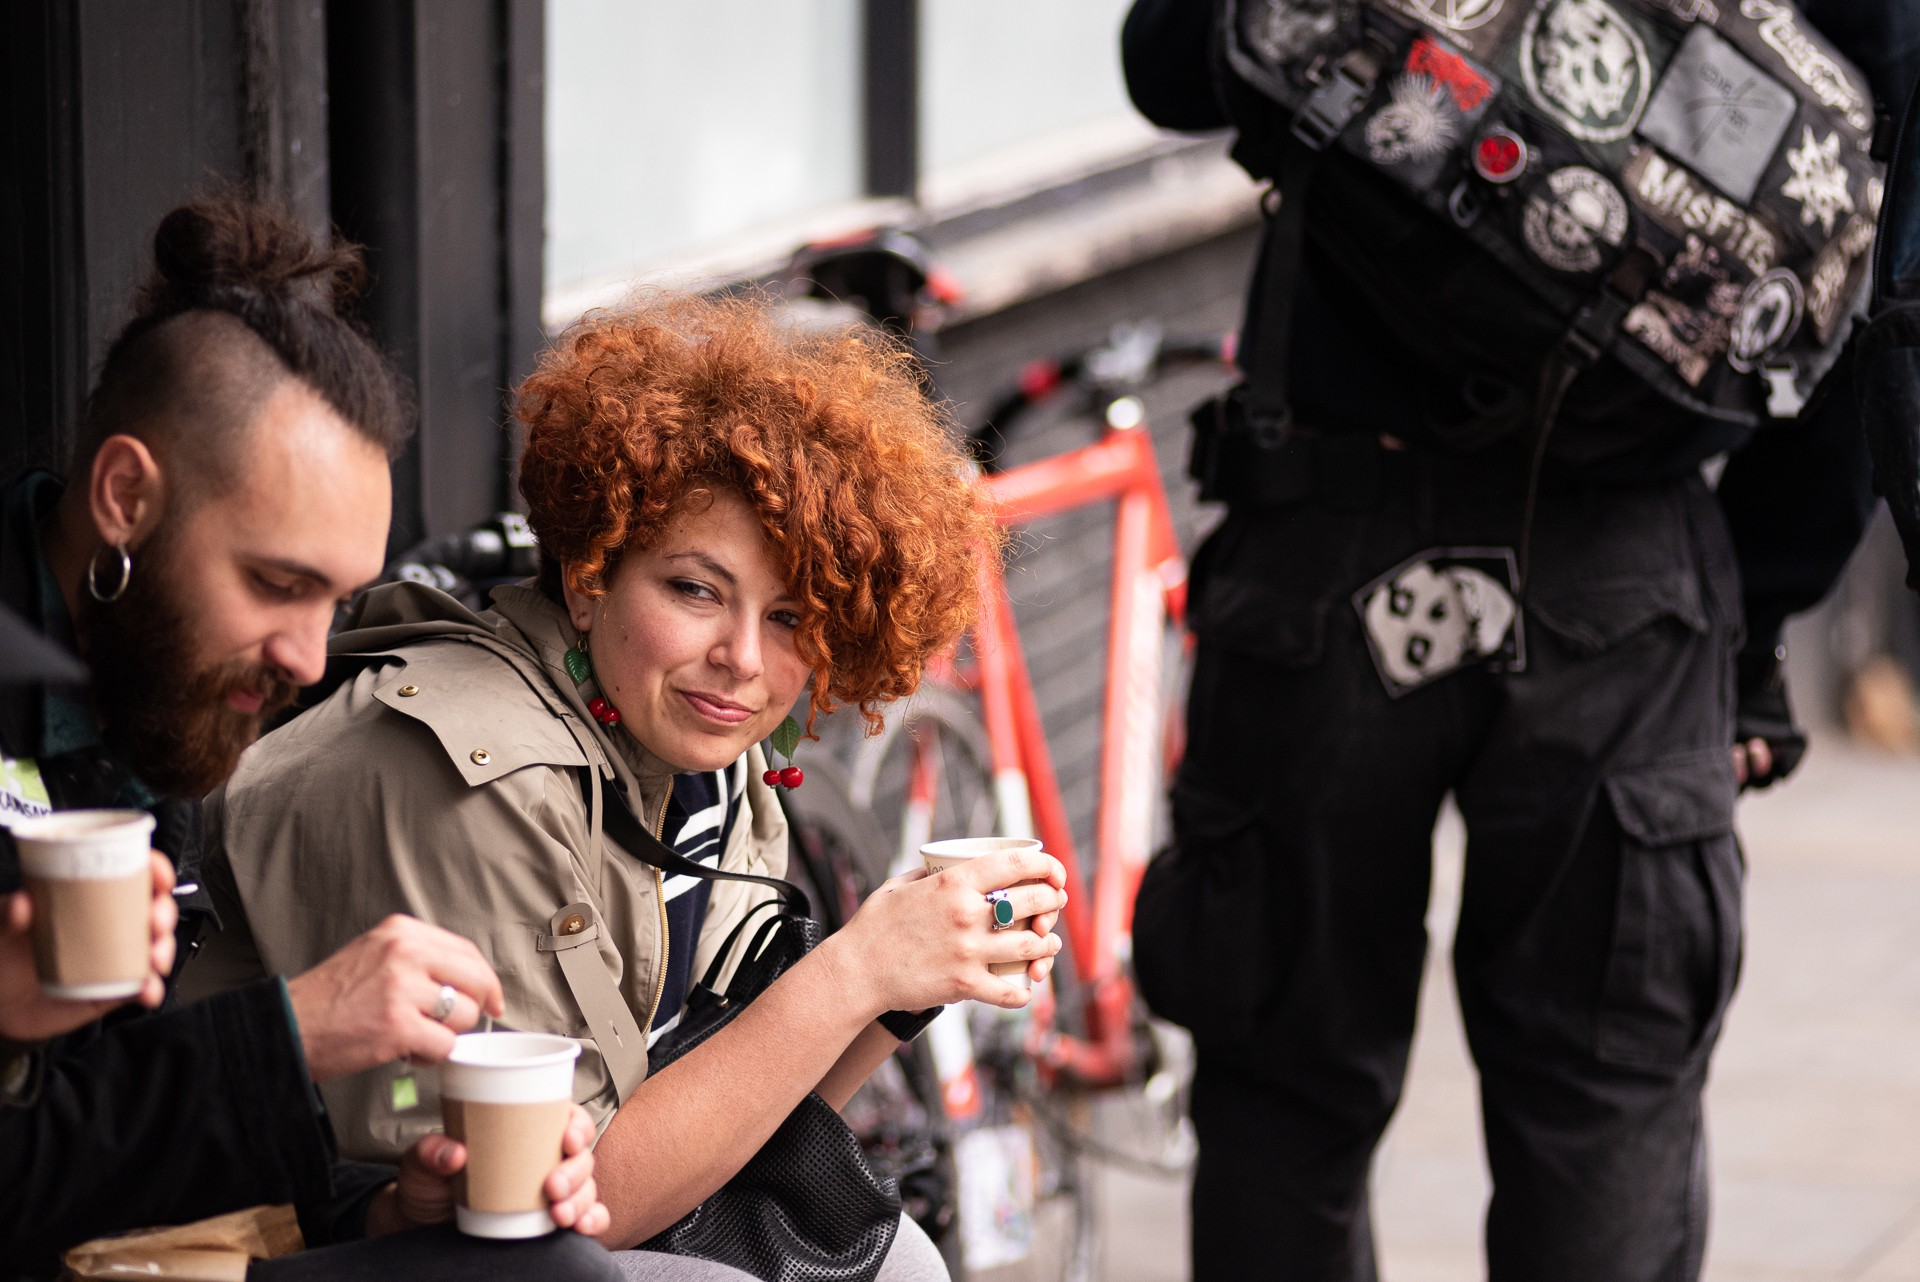 A woman with red curly hair looks on with a cup of coffee.